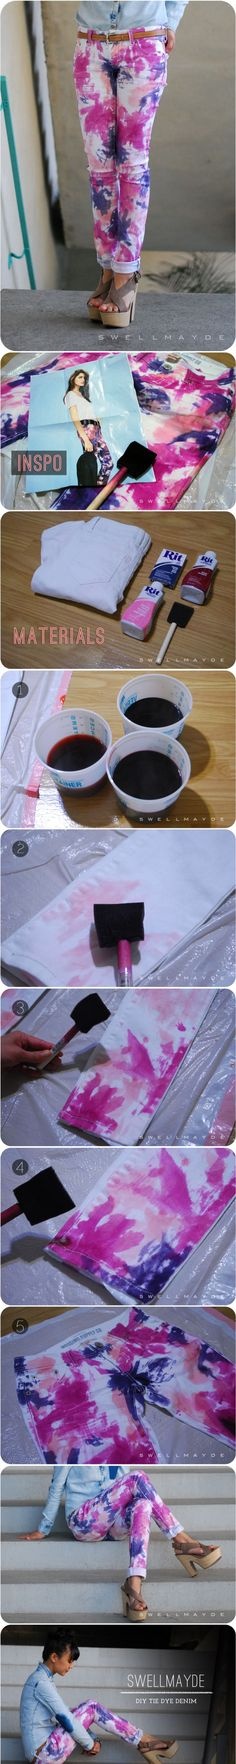 Spruce up your old white jeans with this easy and affordable DIY tie dye denim. Spruce up your old white jeans with this easy and affordable DIY tie dye denim. Diy Clothes Refashion, Diy Clothing, Jeans Refashion, How To Tie Dye, How To Dye Fabric, Diy Tie Dye Denim, Shibori, Fabric Crafts, Diy Crafts